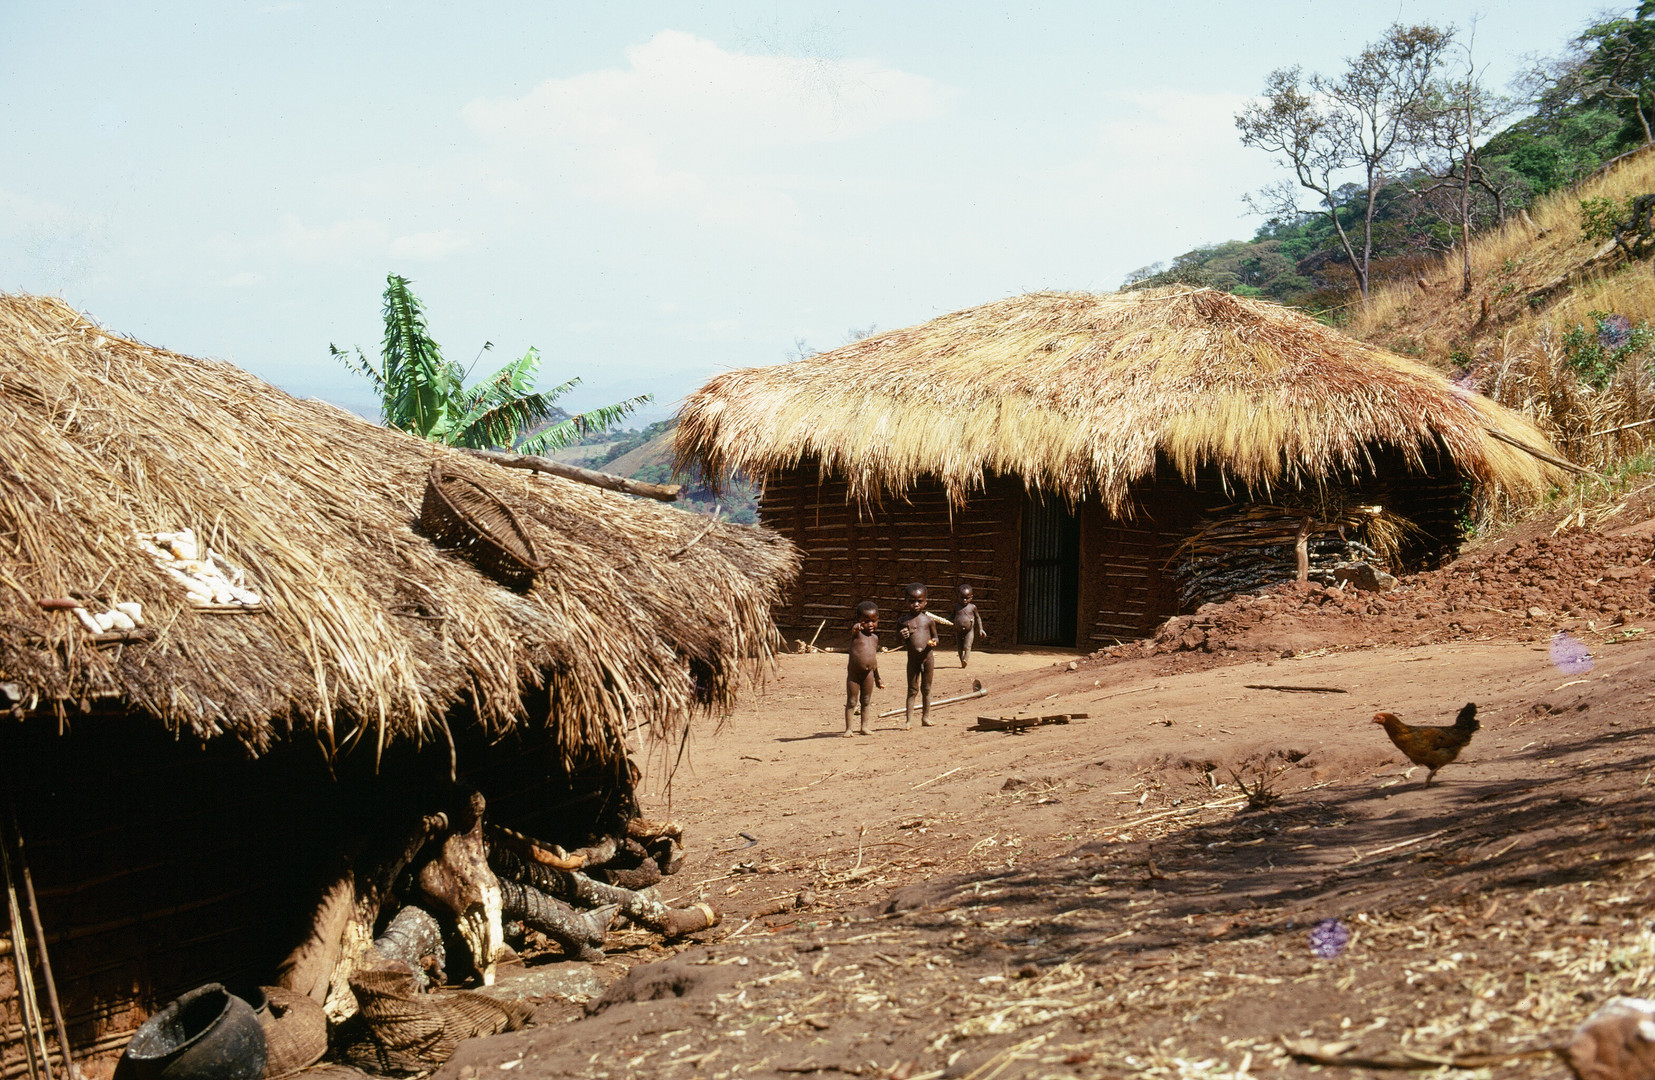 Hamisi Matama's homestead near Bubongo village. Photo by John Crocker, 1973.